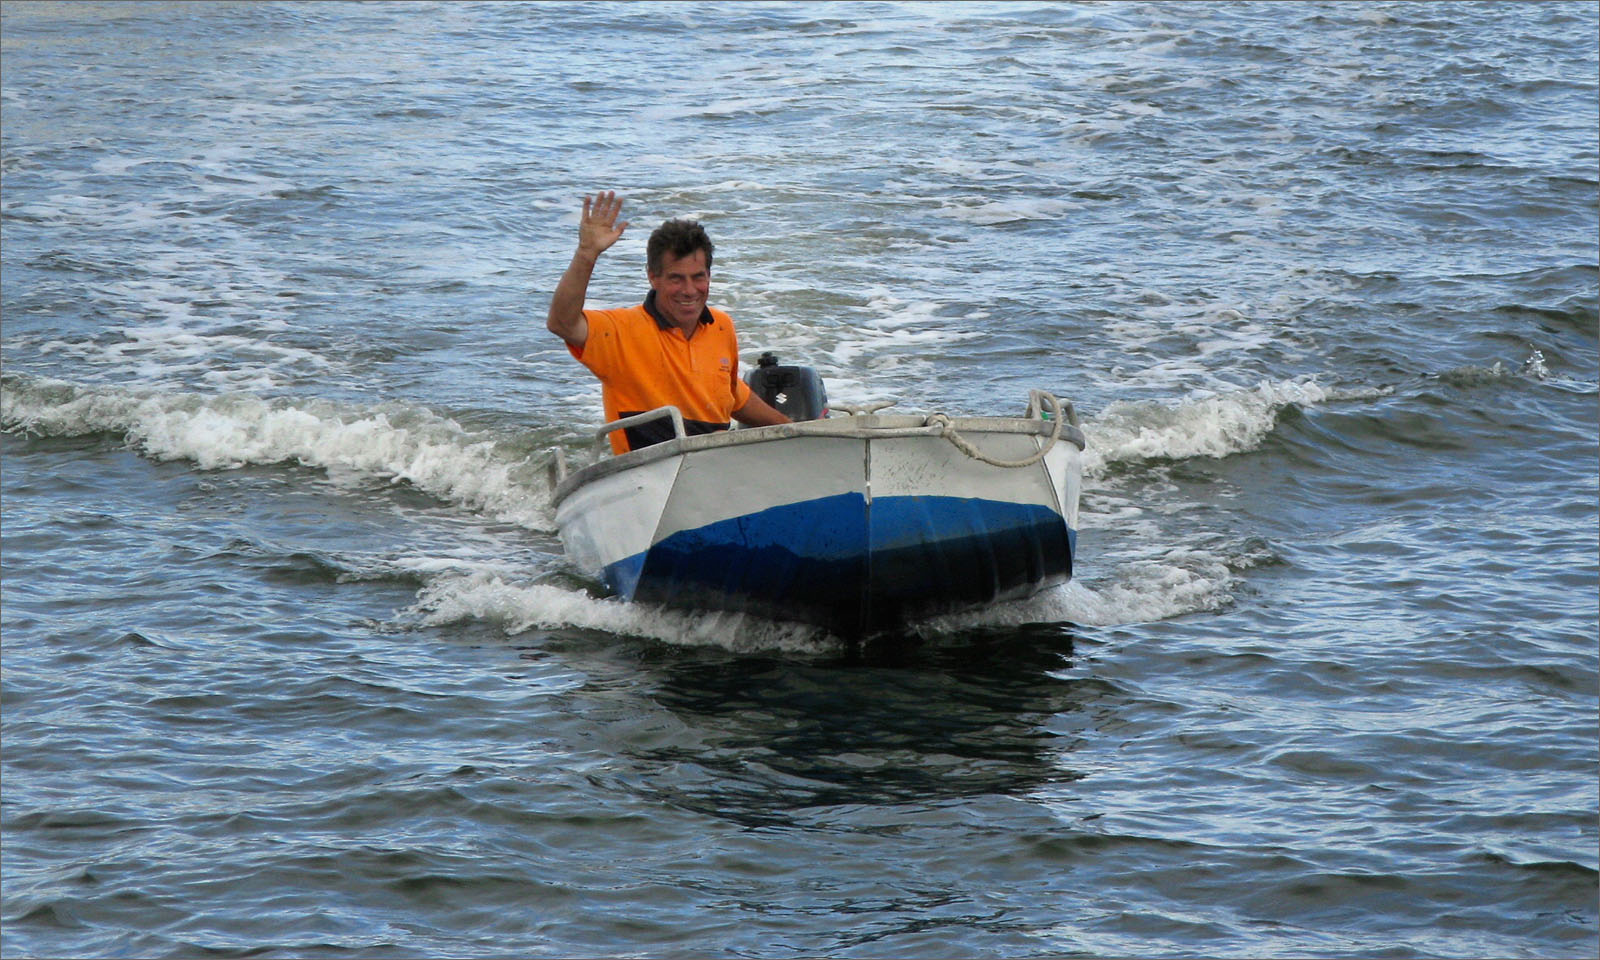 110325_Ricardo_waving_dinghy_1600x960_opt8.jpg